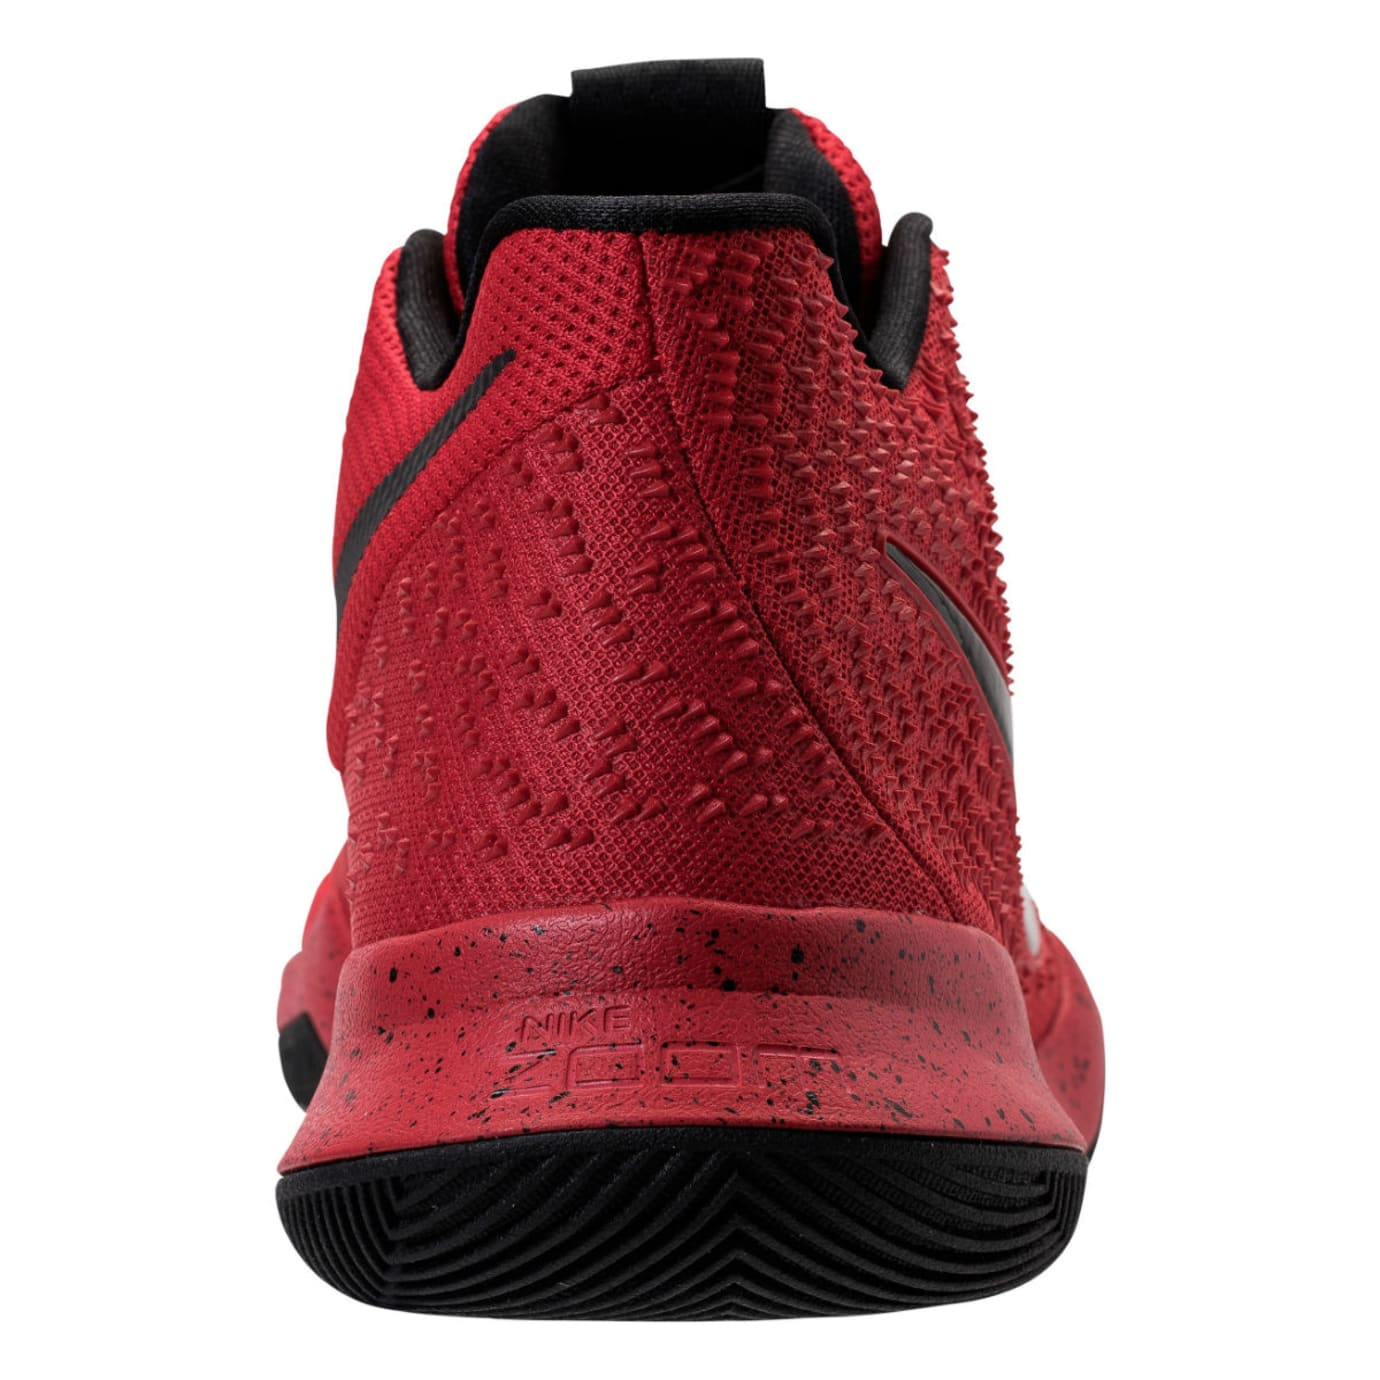 Nike Kyrie 3 Three-Point Contest University Red Release Date Heel 852395-600